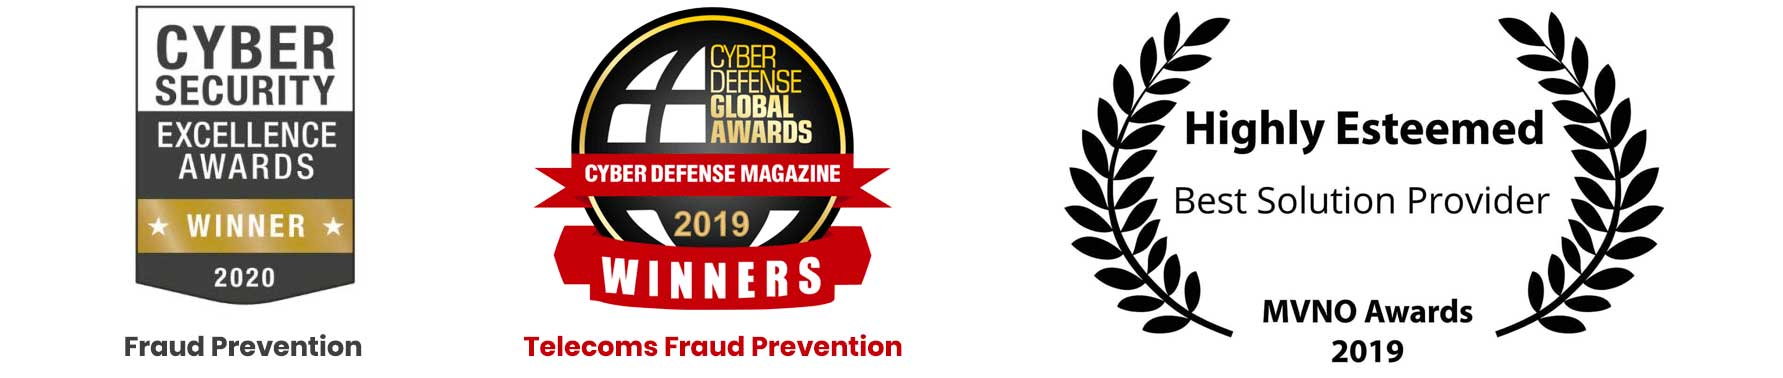 Cybersecurity Awards, Fraud Prevention Winner, Best-Solution-Provider